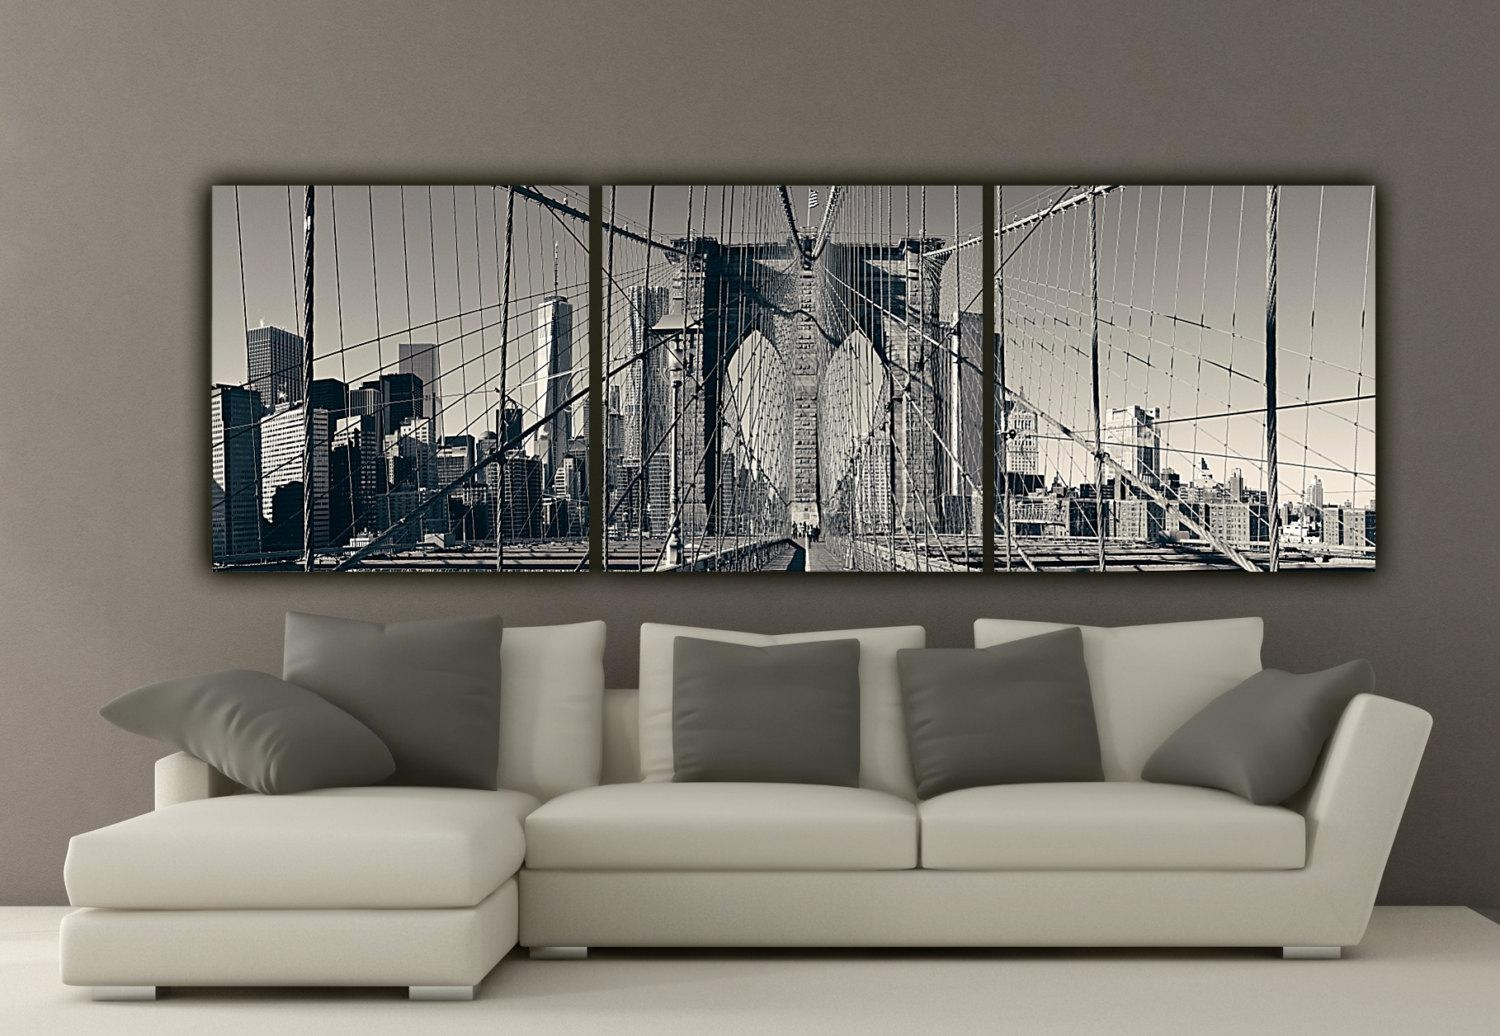 New York Brooklyn Bridge Canvas Wall Art Black And White New Intended For New York City Canvas Wall Art (View 2 of 20)